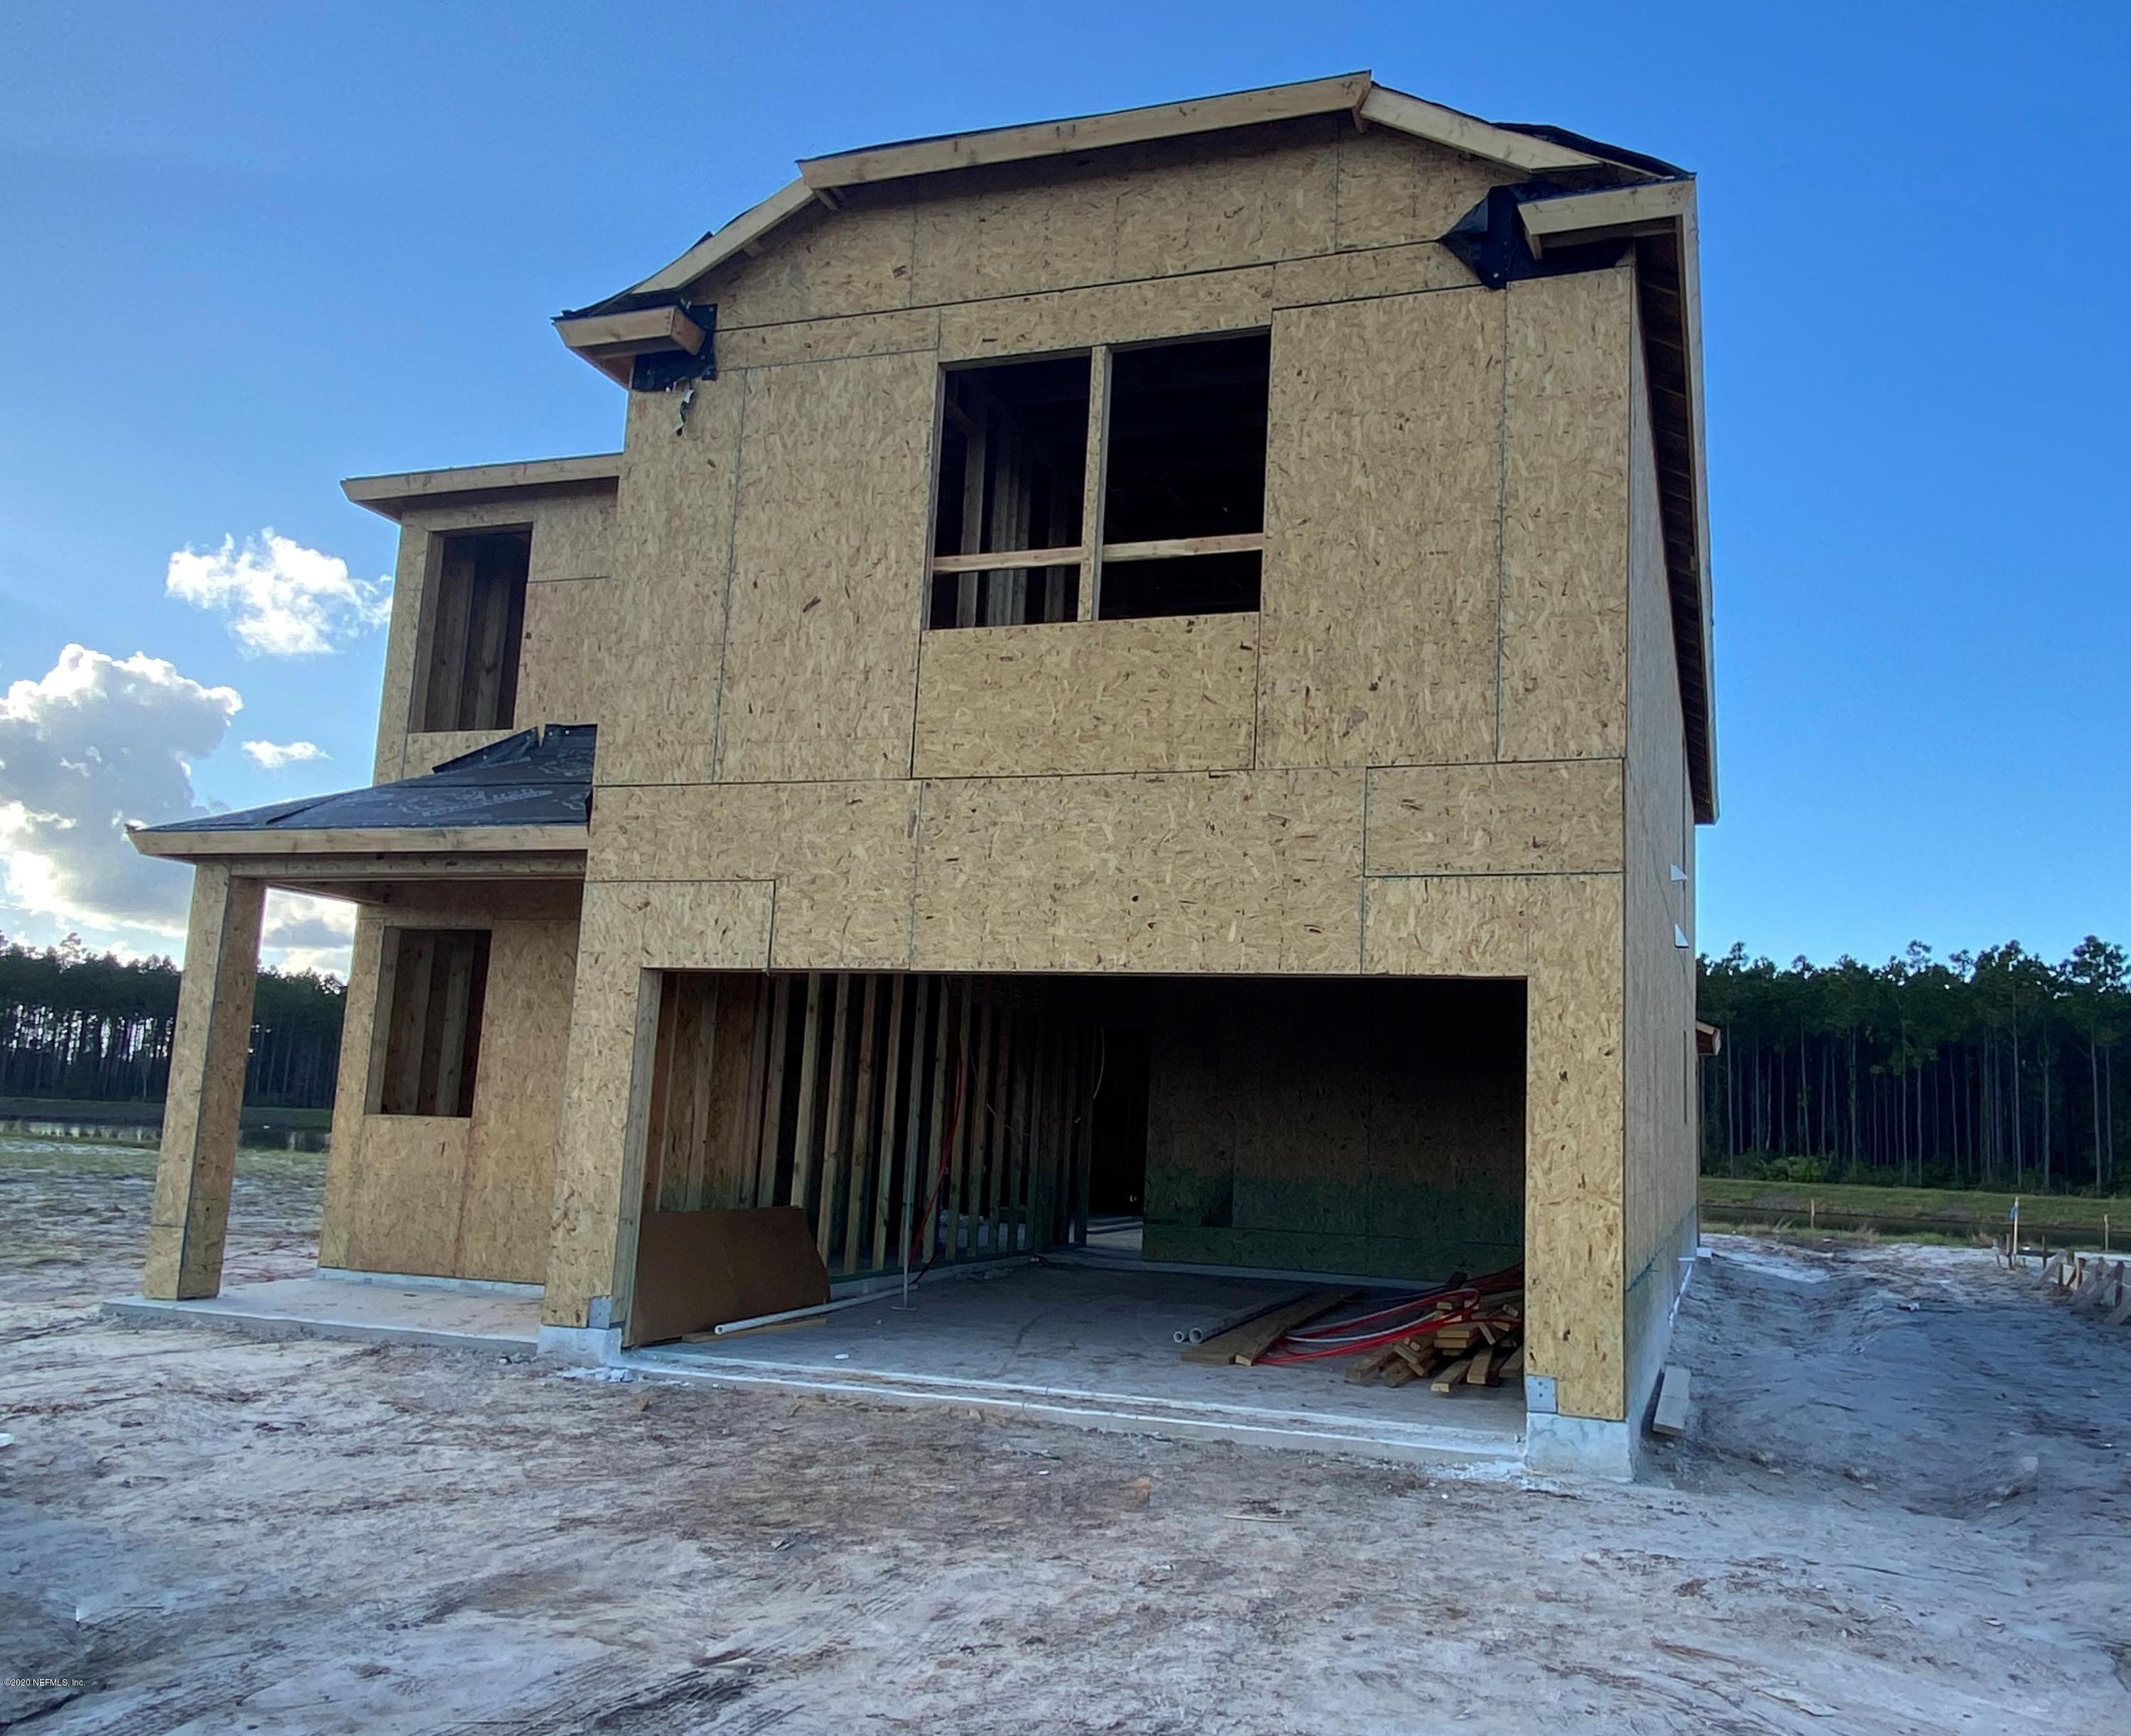 189 CREEKMORE, ST AUGUSTINE, FLORIDA 32092, 3 Bedrooms Bedrooms, ,2 BathroomsBathrooms,Residential,For sale,CREEKMORE,1080510